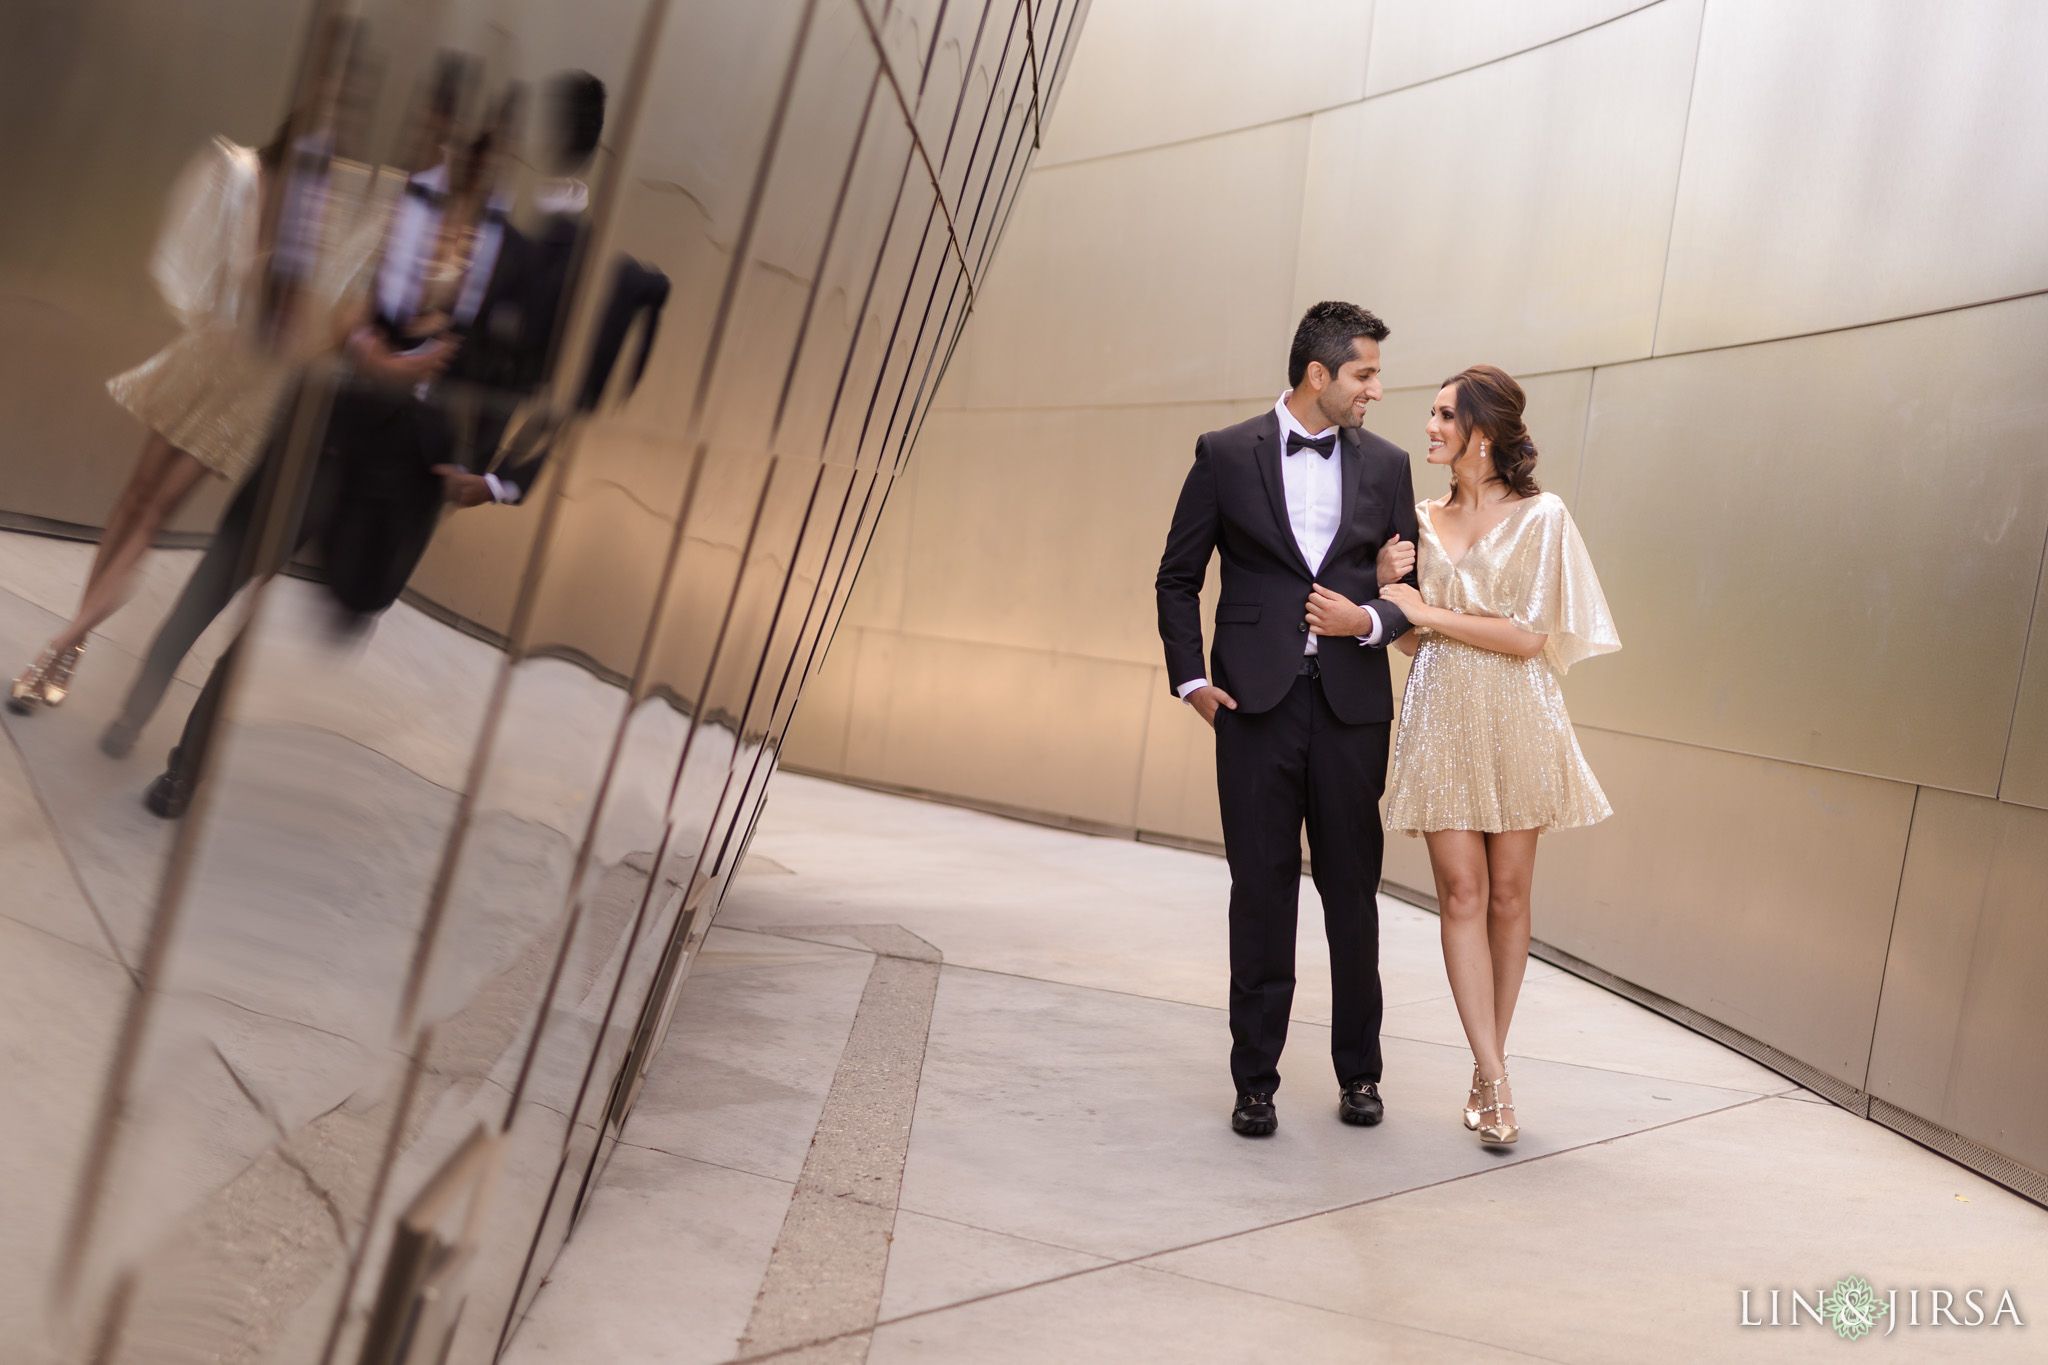 zbb Downtown Los Angeles Walt Disney Concert Hall Engagement Photography